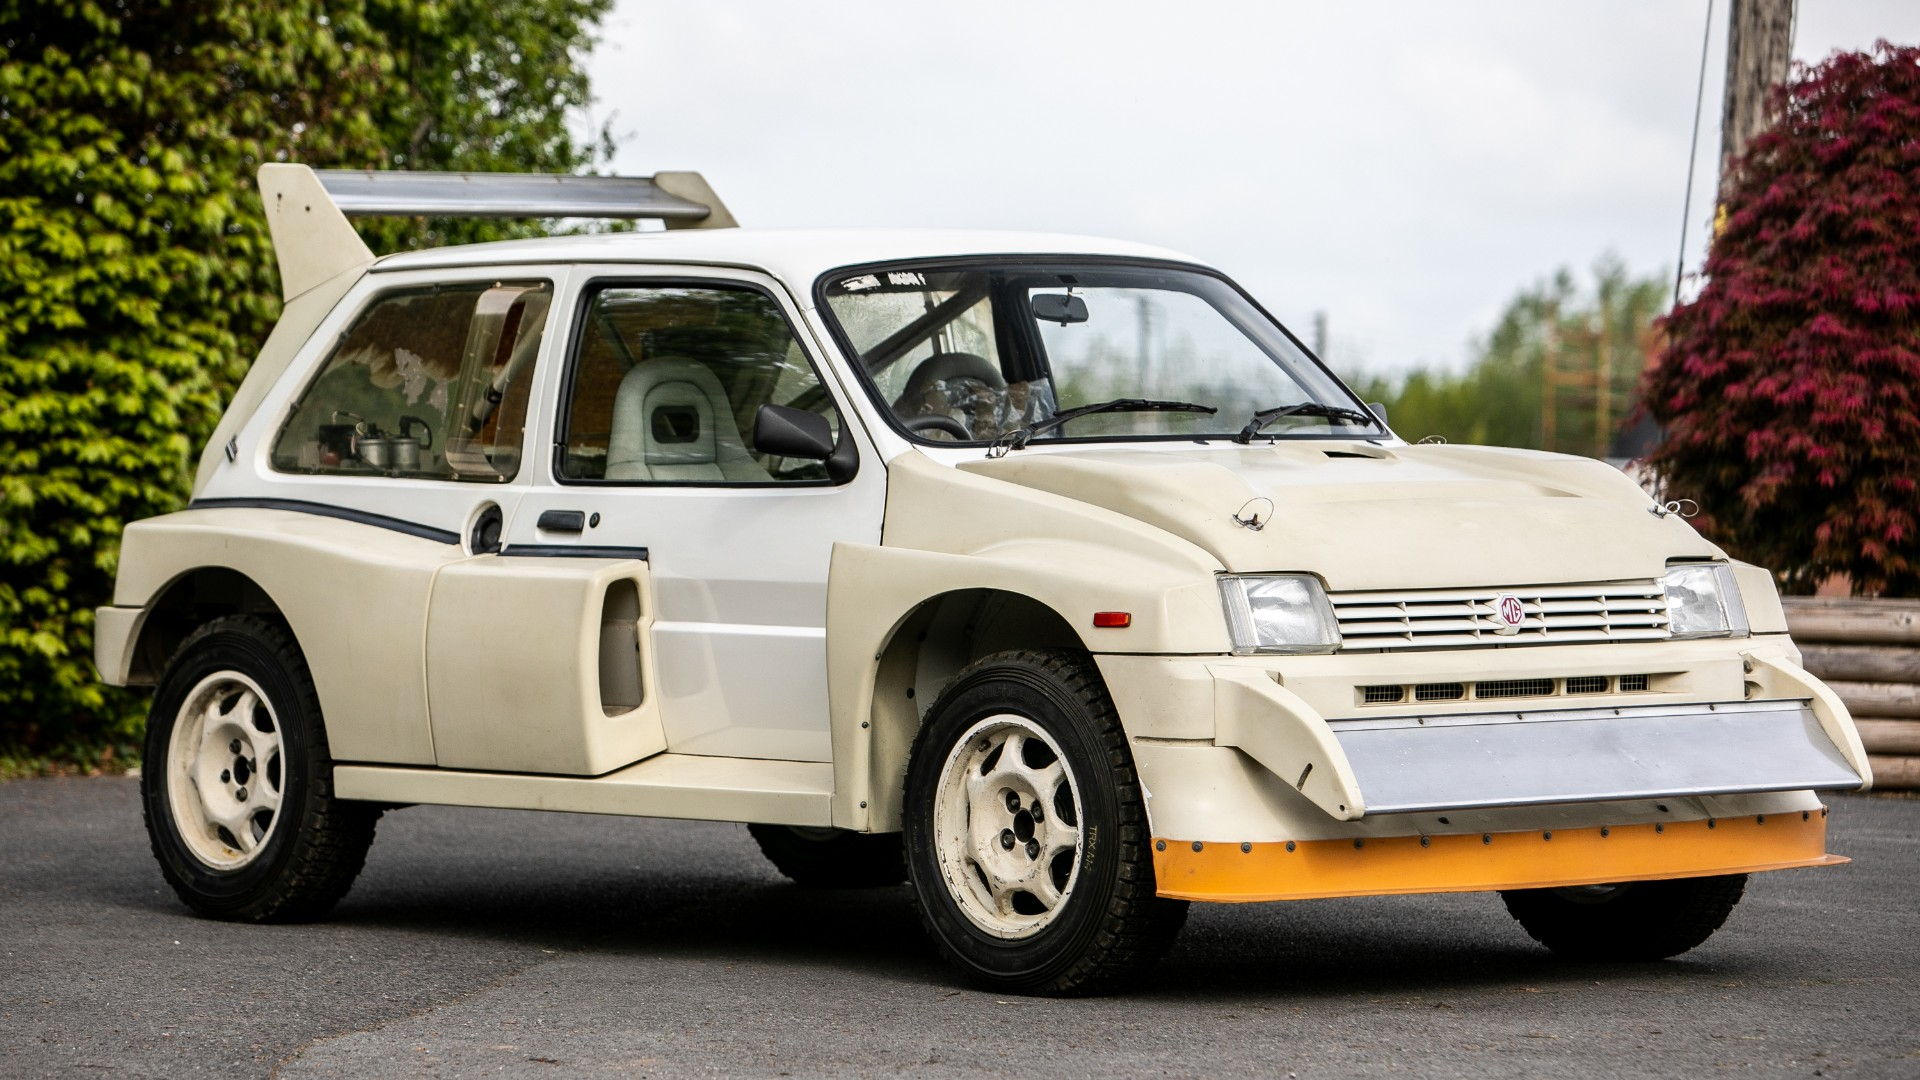 MG Metro 6R4 for sale at Silverstone Classic